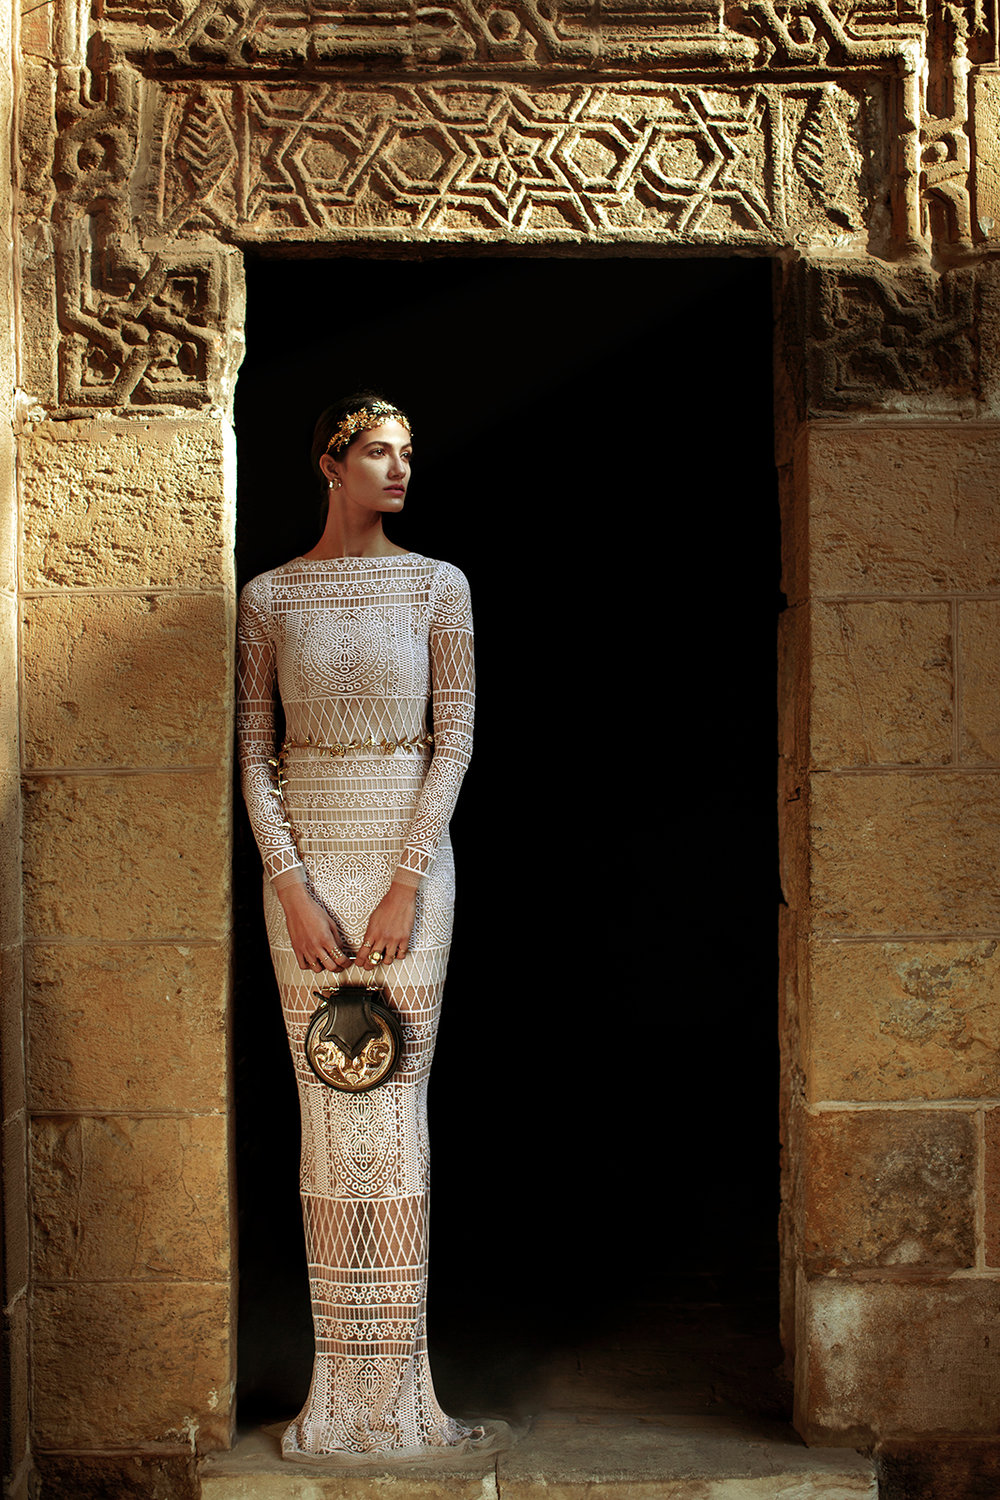 Published in Vogue Arabia Model: Tara Emad Styling: Lorand Lajos Bag: Okhtein Gown: Kojak Accessories: House of Select, Djeweled Production: Maison Pyramide Photography and Art Direction: Bassam Allam Location: Beit Al Suhaimy, Cairo, Egypt